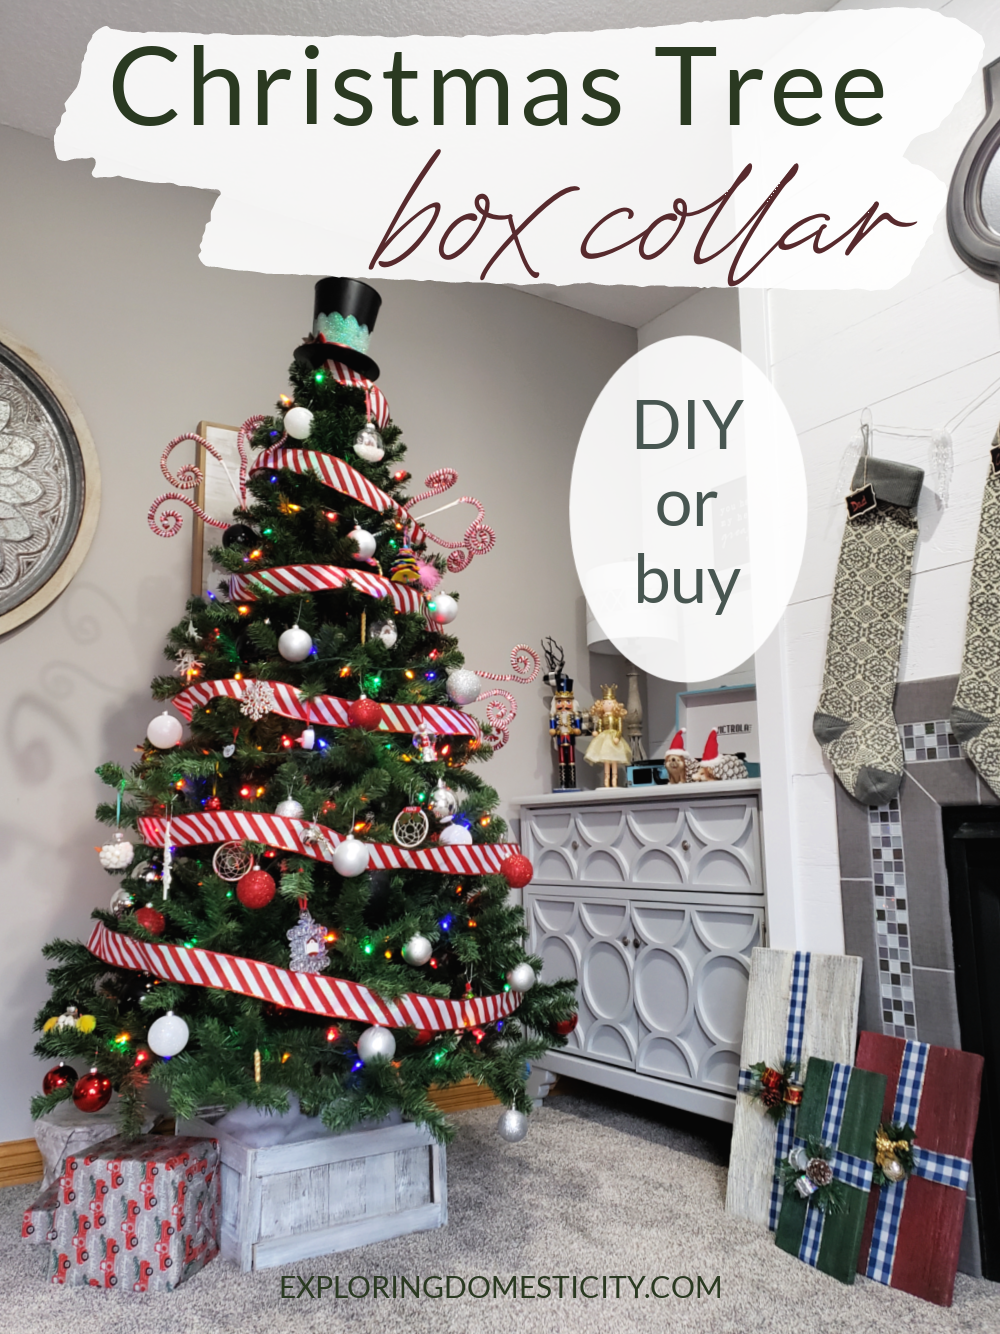 Christmas Tree Box Collar Diy Or Buy Exploring Domesticity